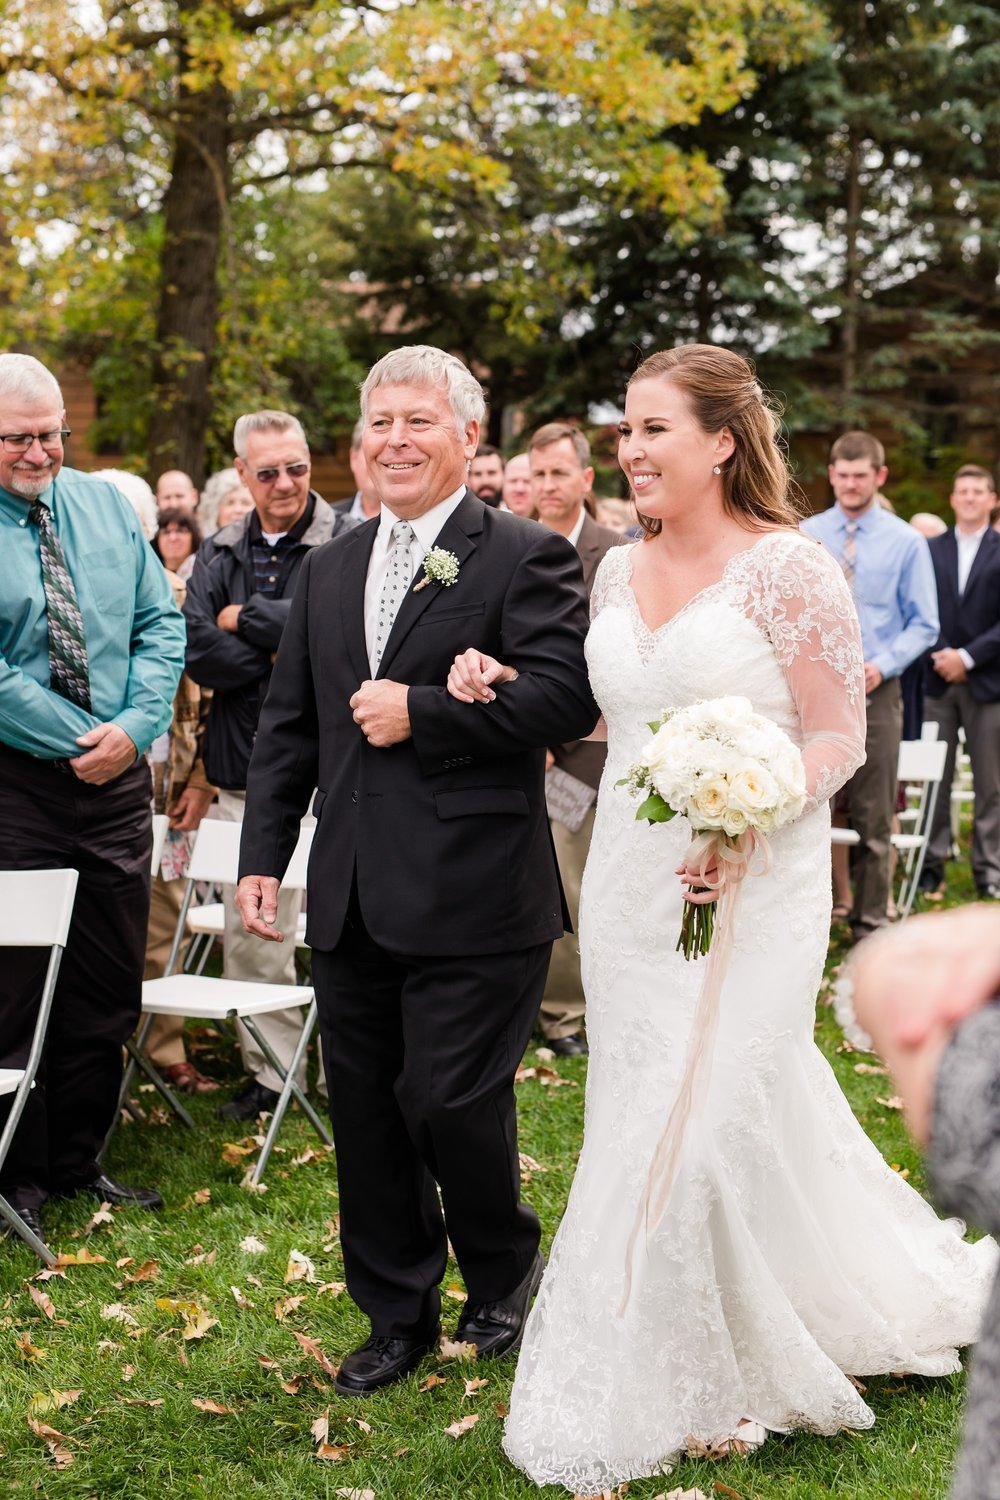 AmberLangerudPhotography_Fair Hills Resort Lakeside Wedding in Minnesota_3460.jpg